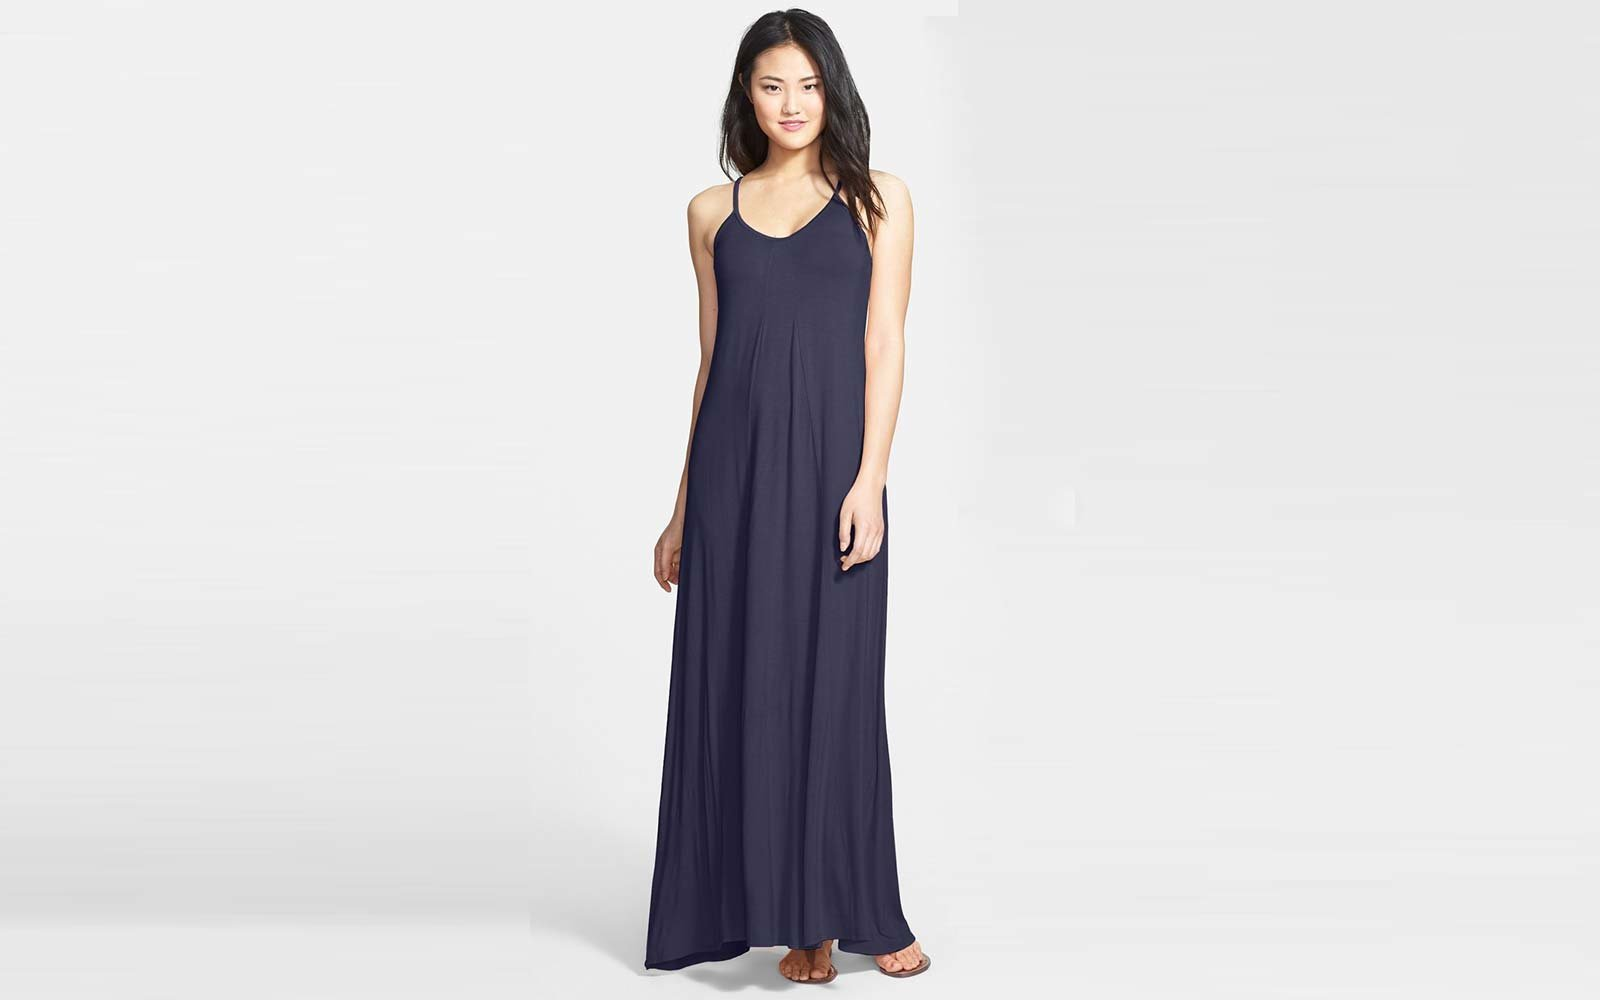 9a05050b57 Loveappella Maxi Dress in Midnight Blue. We d wear this loose ...